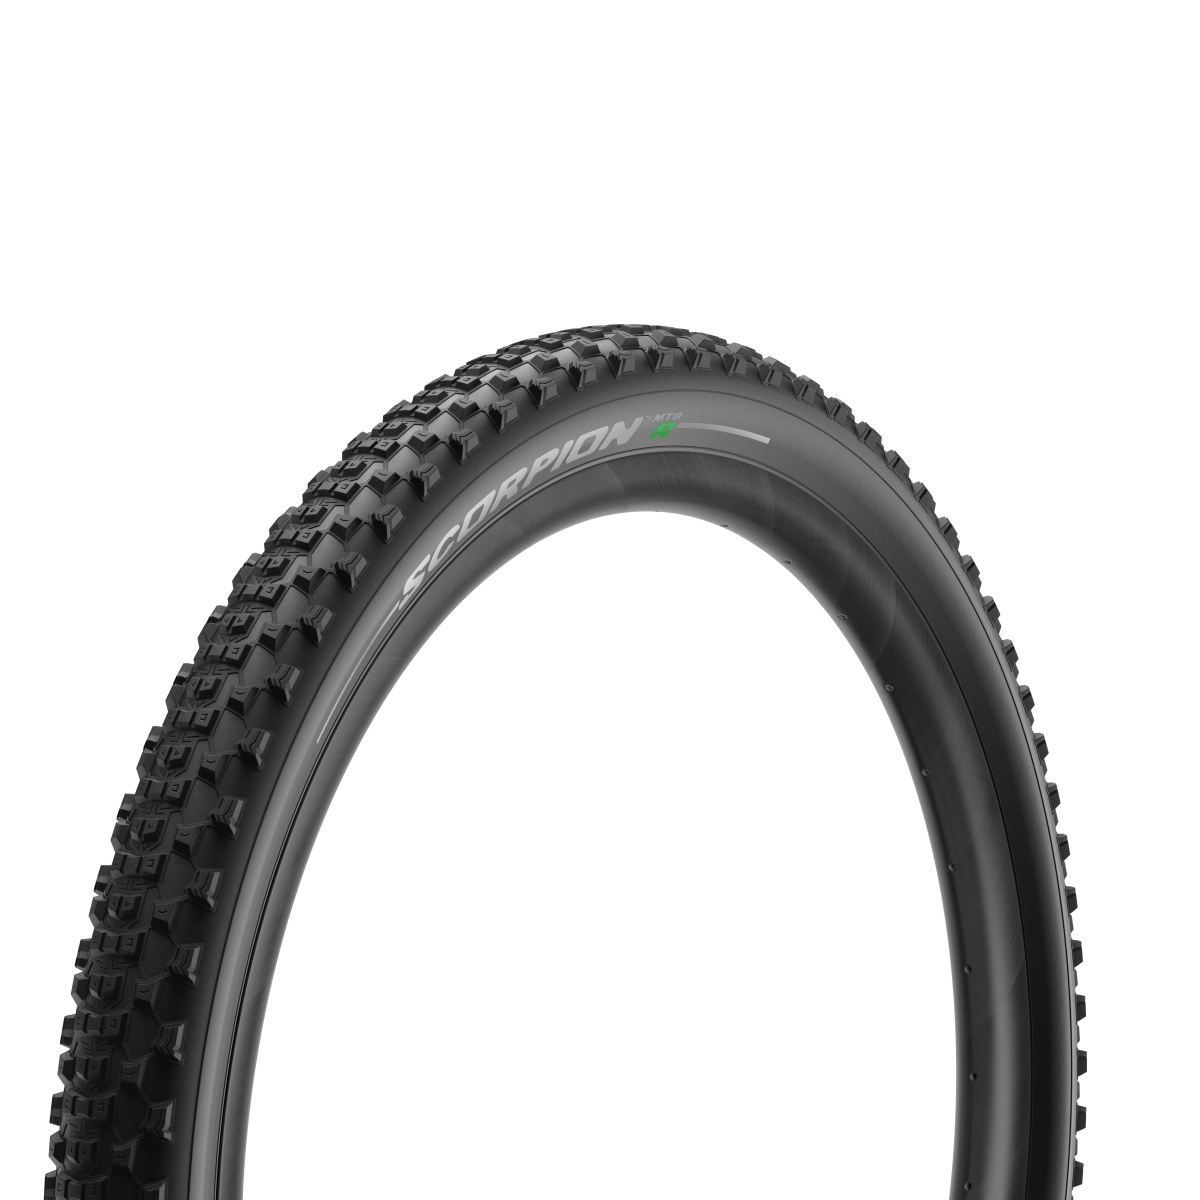 Pirelli Scorpion mountain bike tires launched